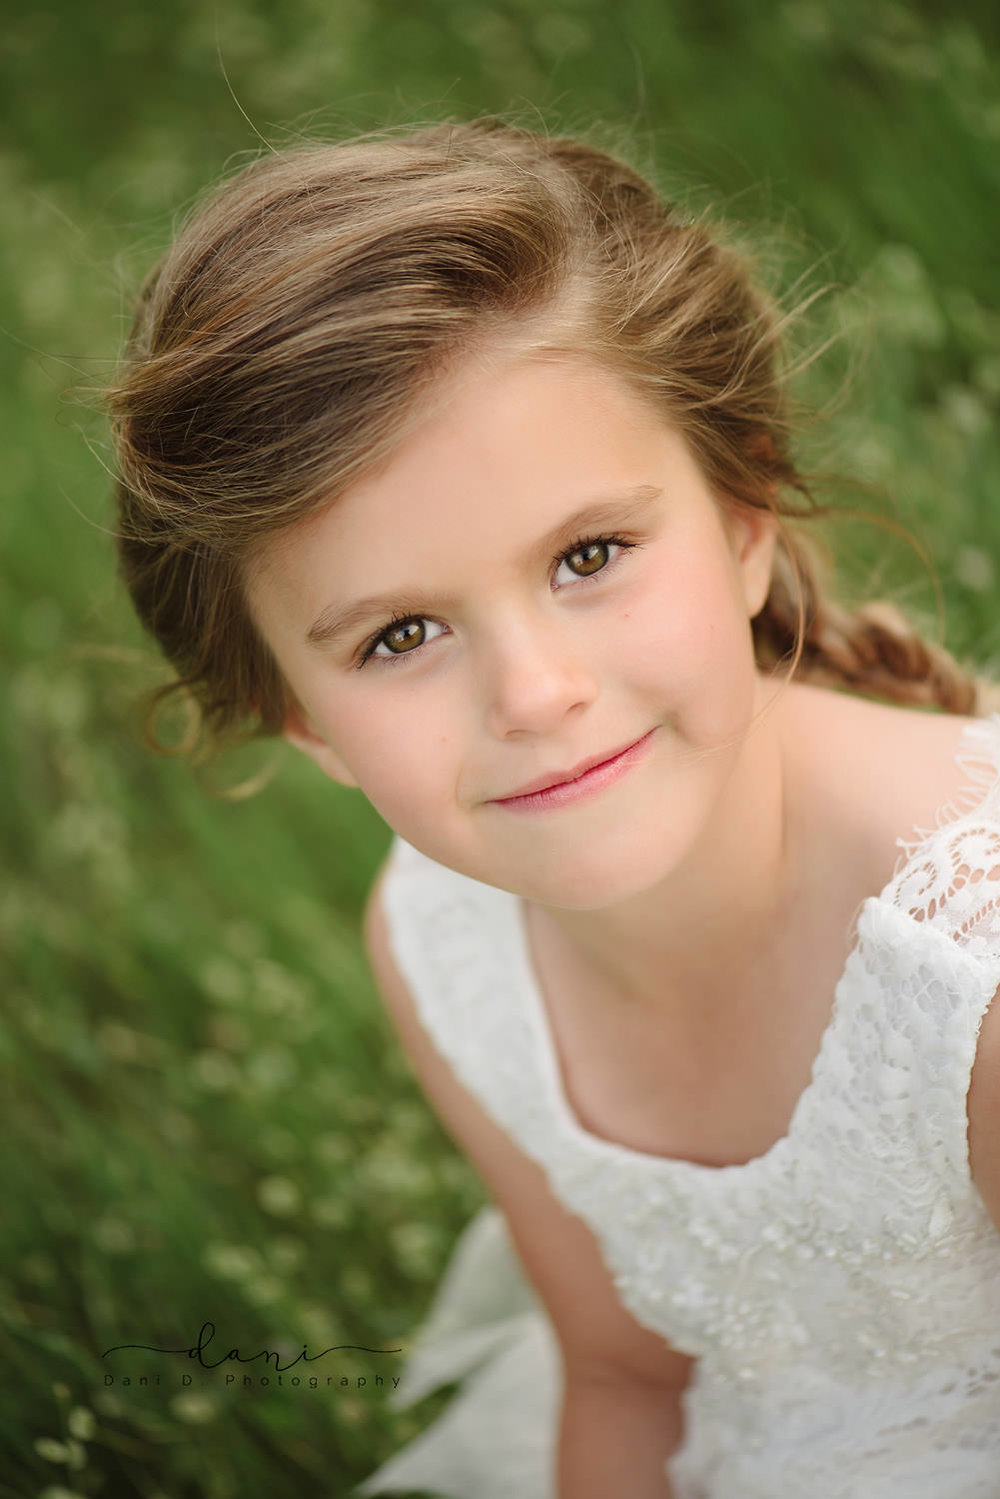 Katiana Upton model - Northern California child and family photographer